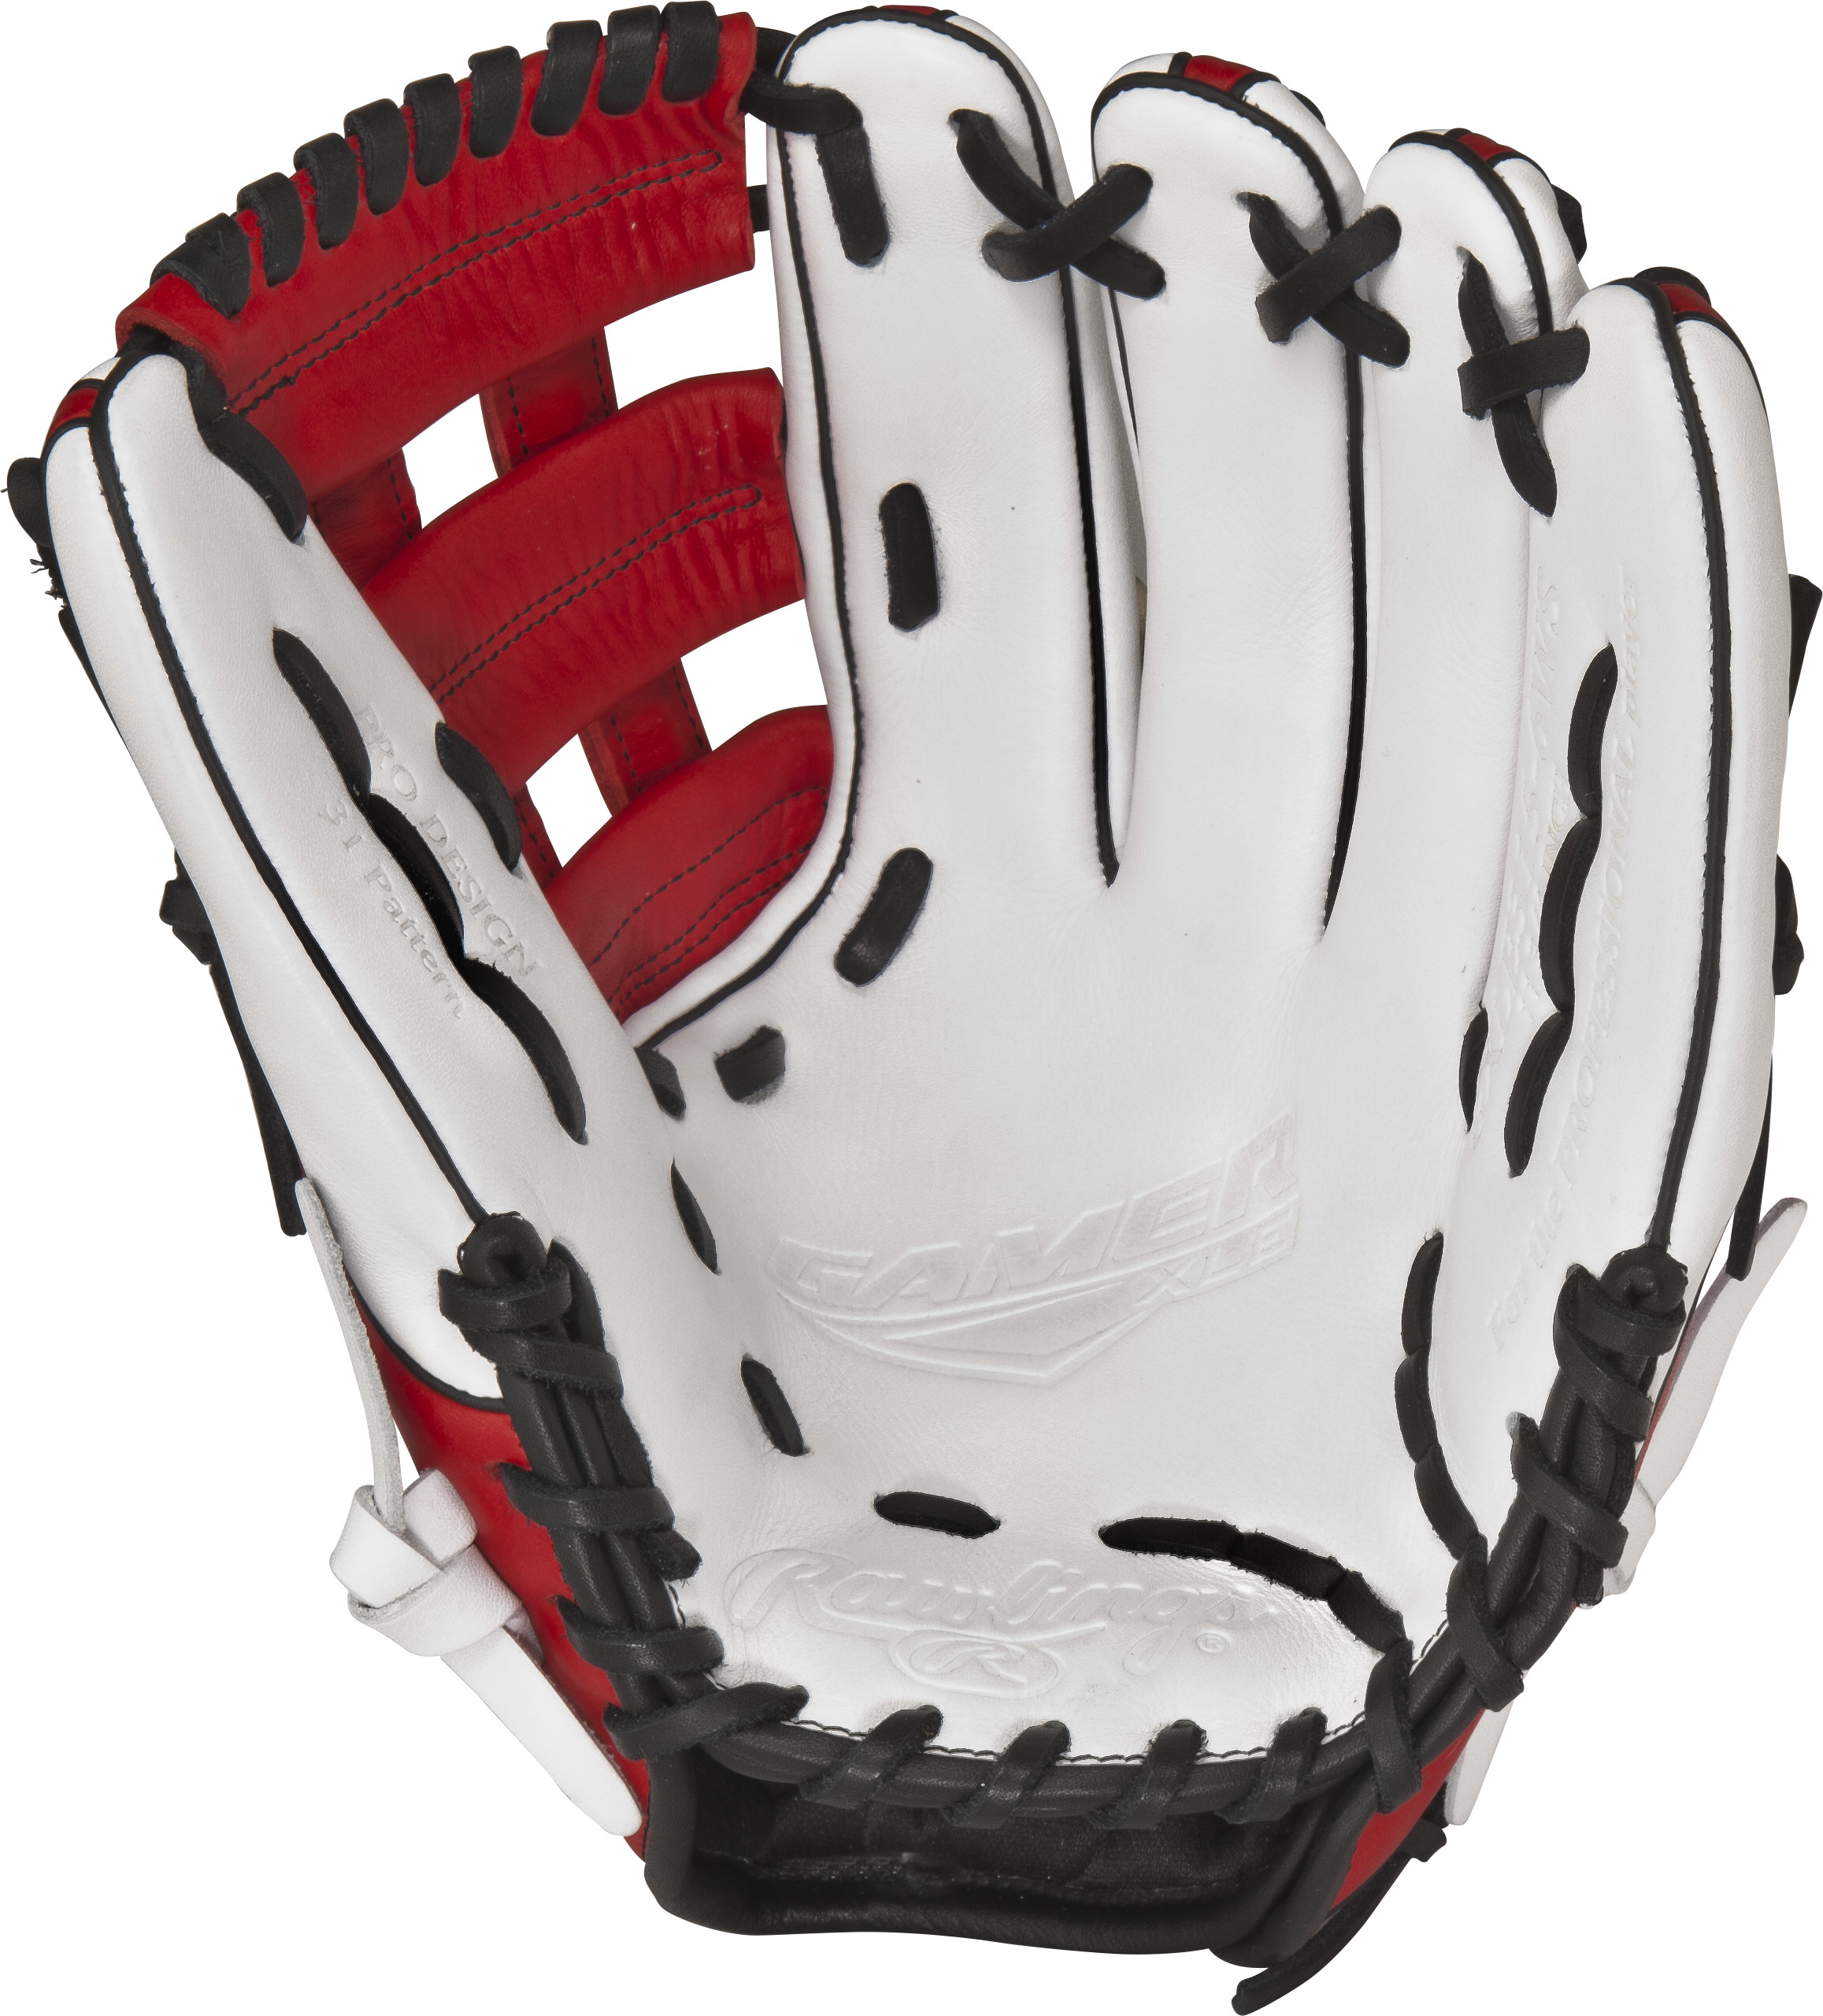 http://www.bestbatdeals.com/images/gloves/rawlings/GXLE315-6WS_palm.jpg